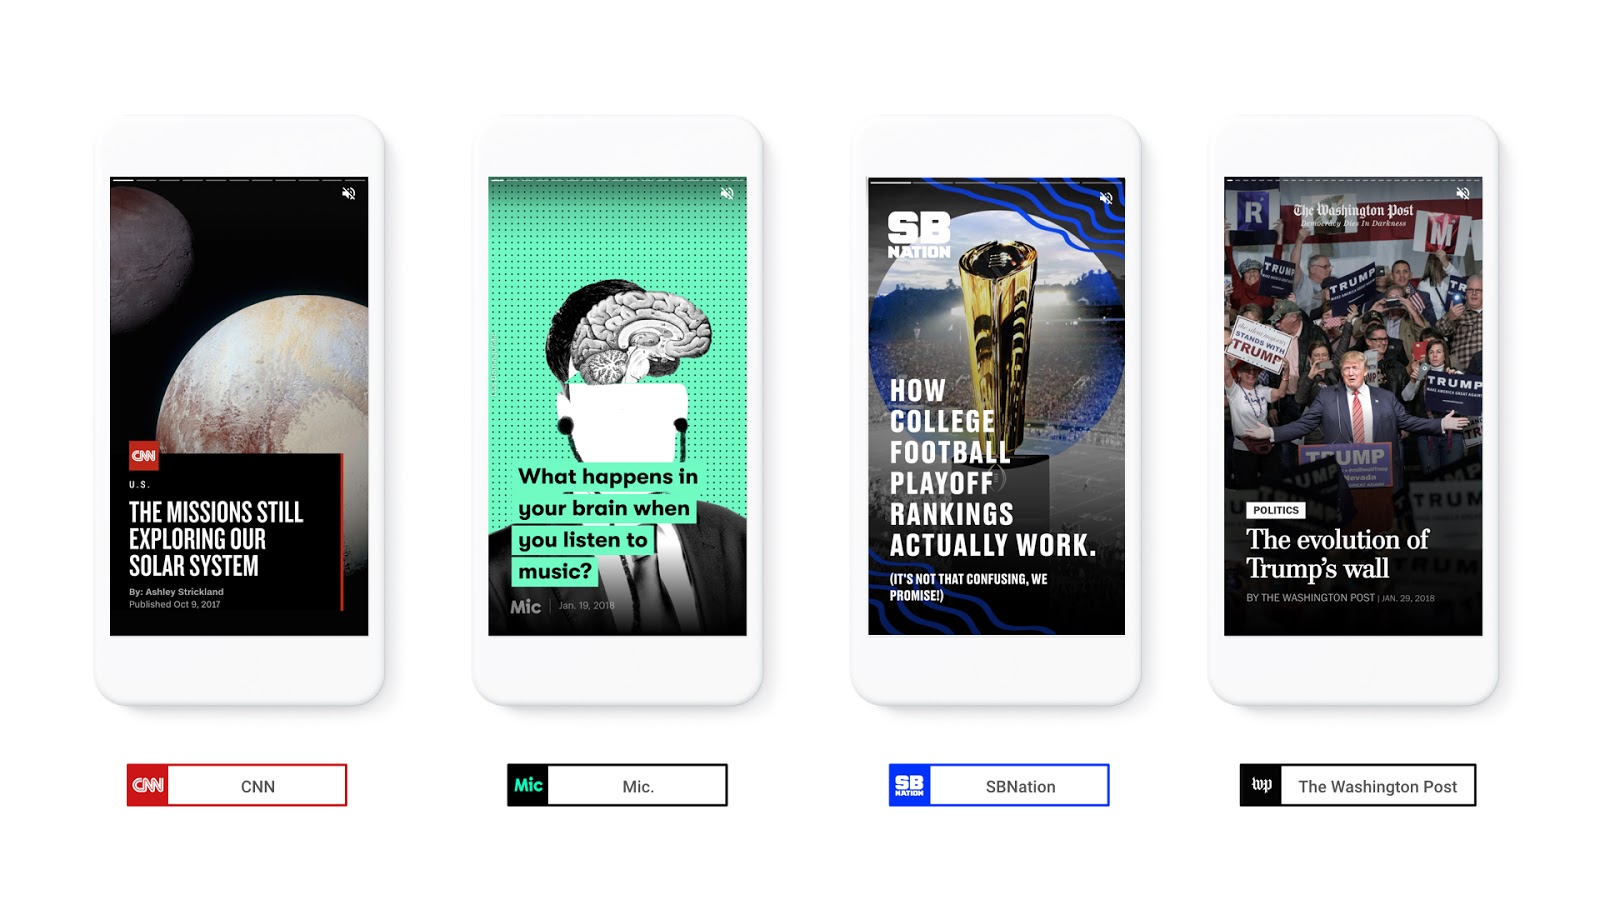 photo image Google plans Snapchat-esque stories for mobile search results